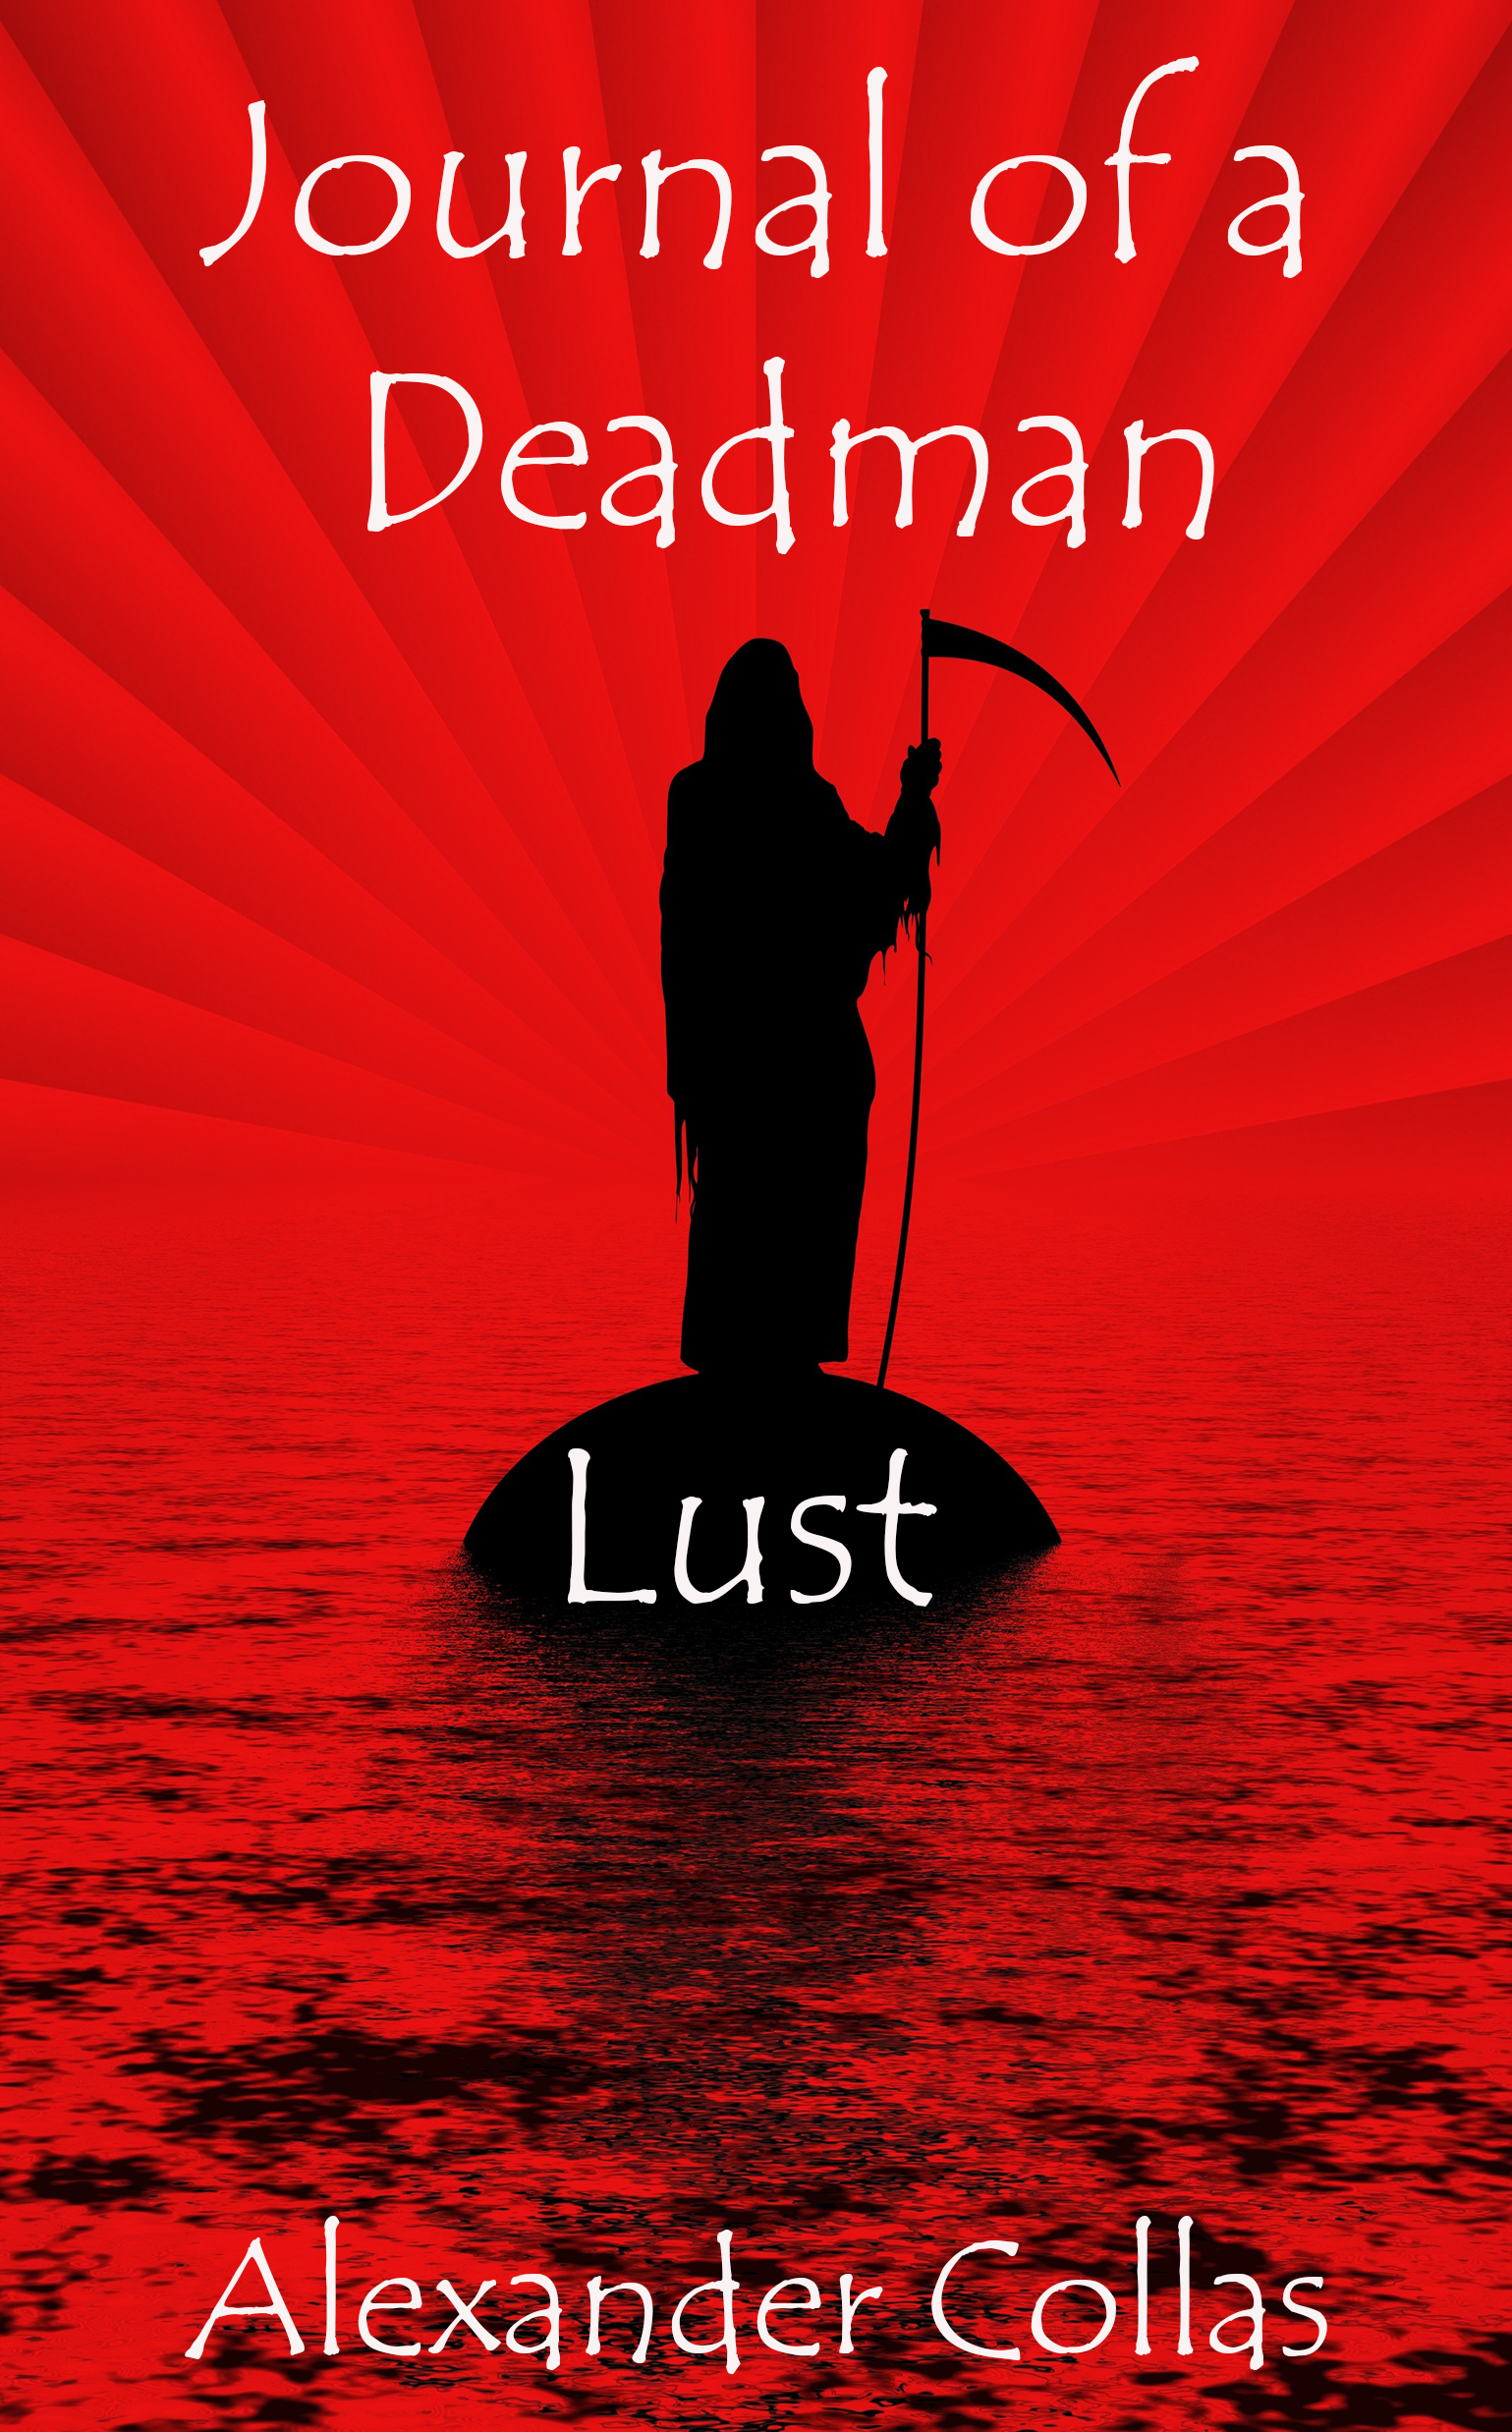 Journal of a Deadman 2 - Lust